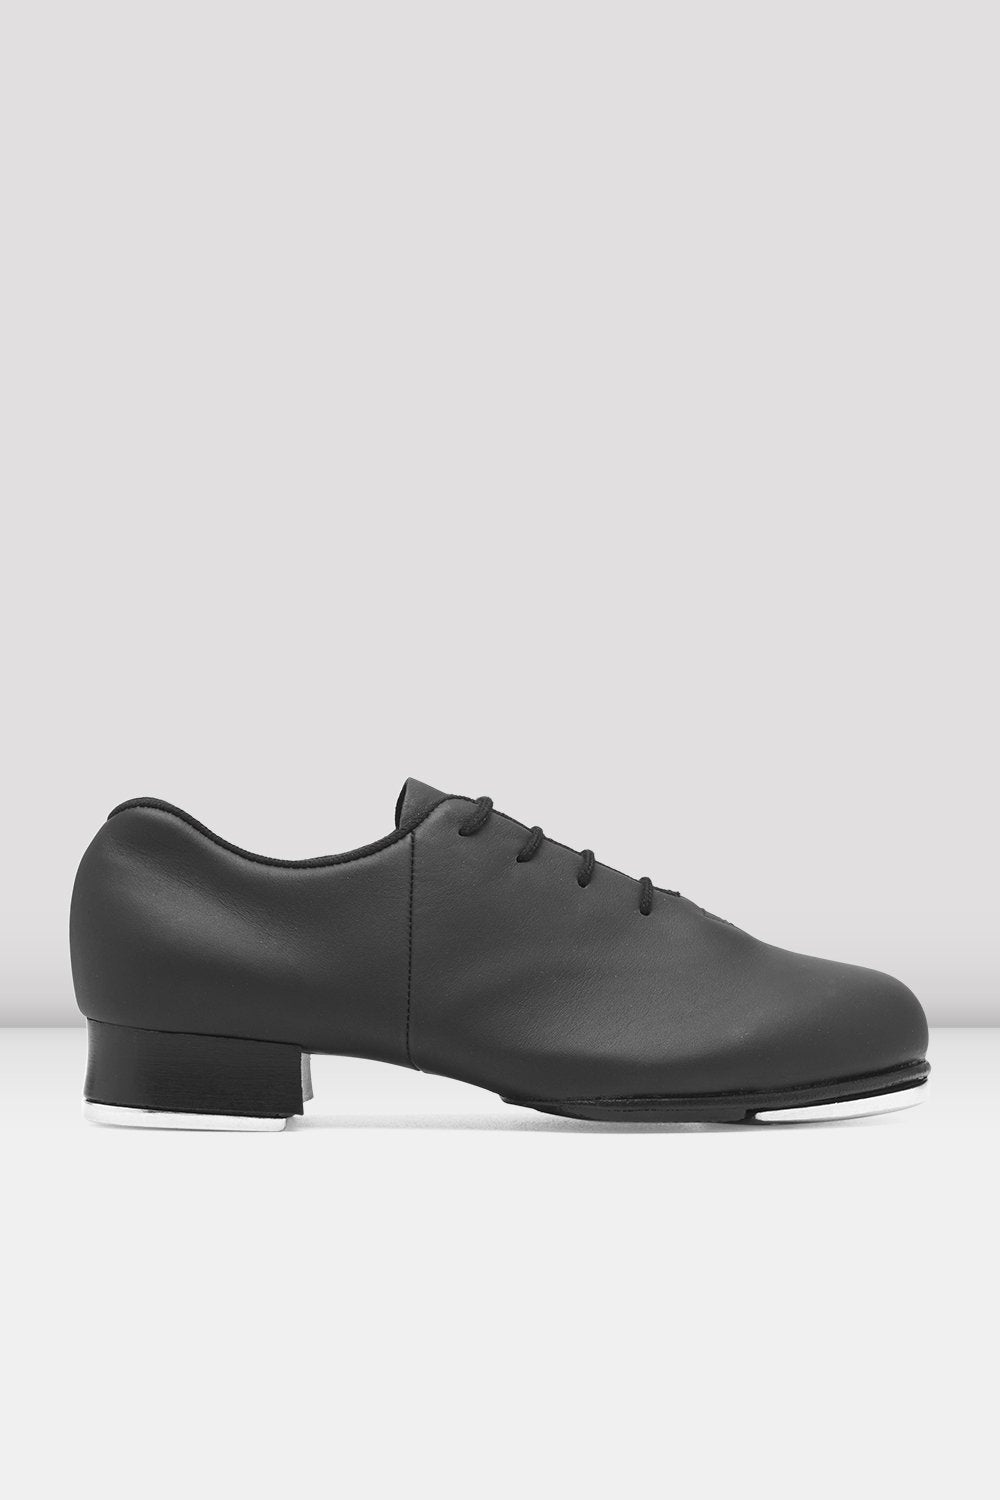 BLOCH - SO388L - Tap-Flex Leather Tap Shoes - Black